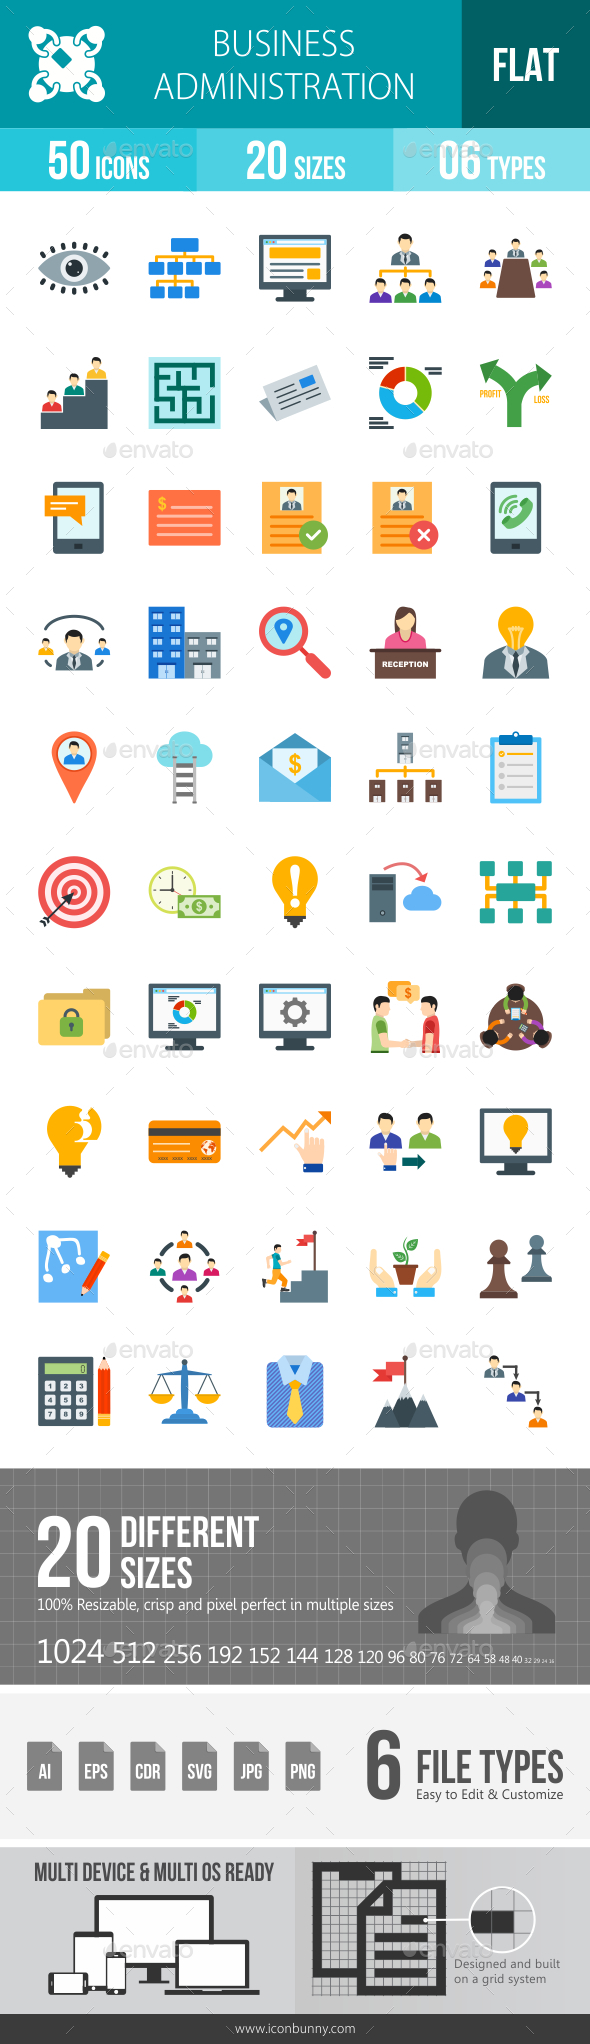 Business Administration Flat Multicolor Icons - Icons